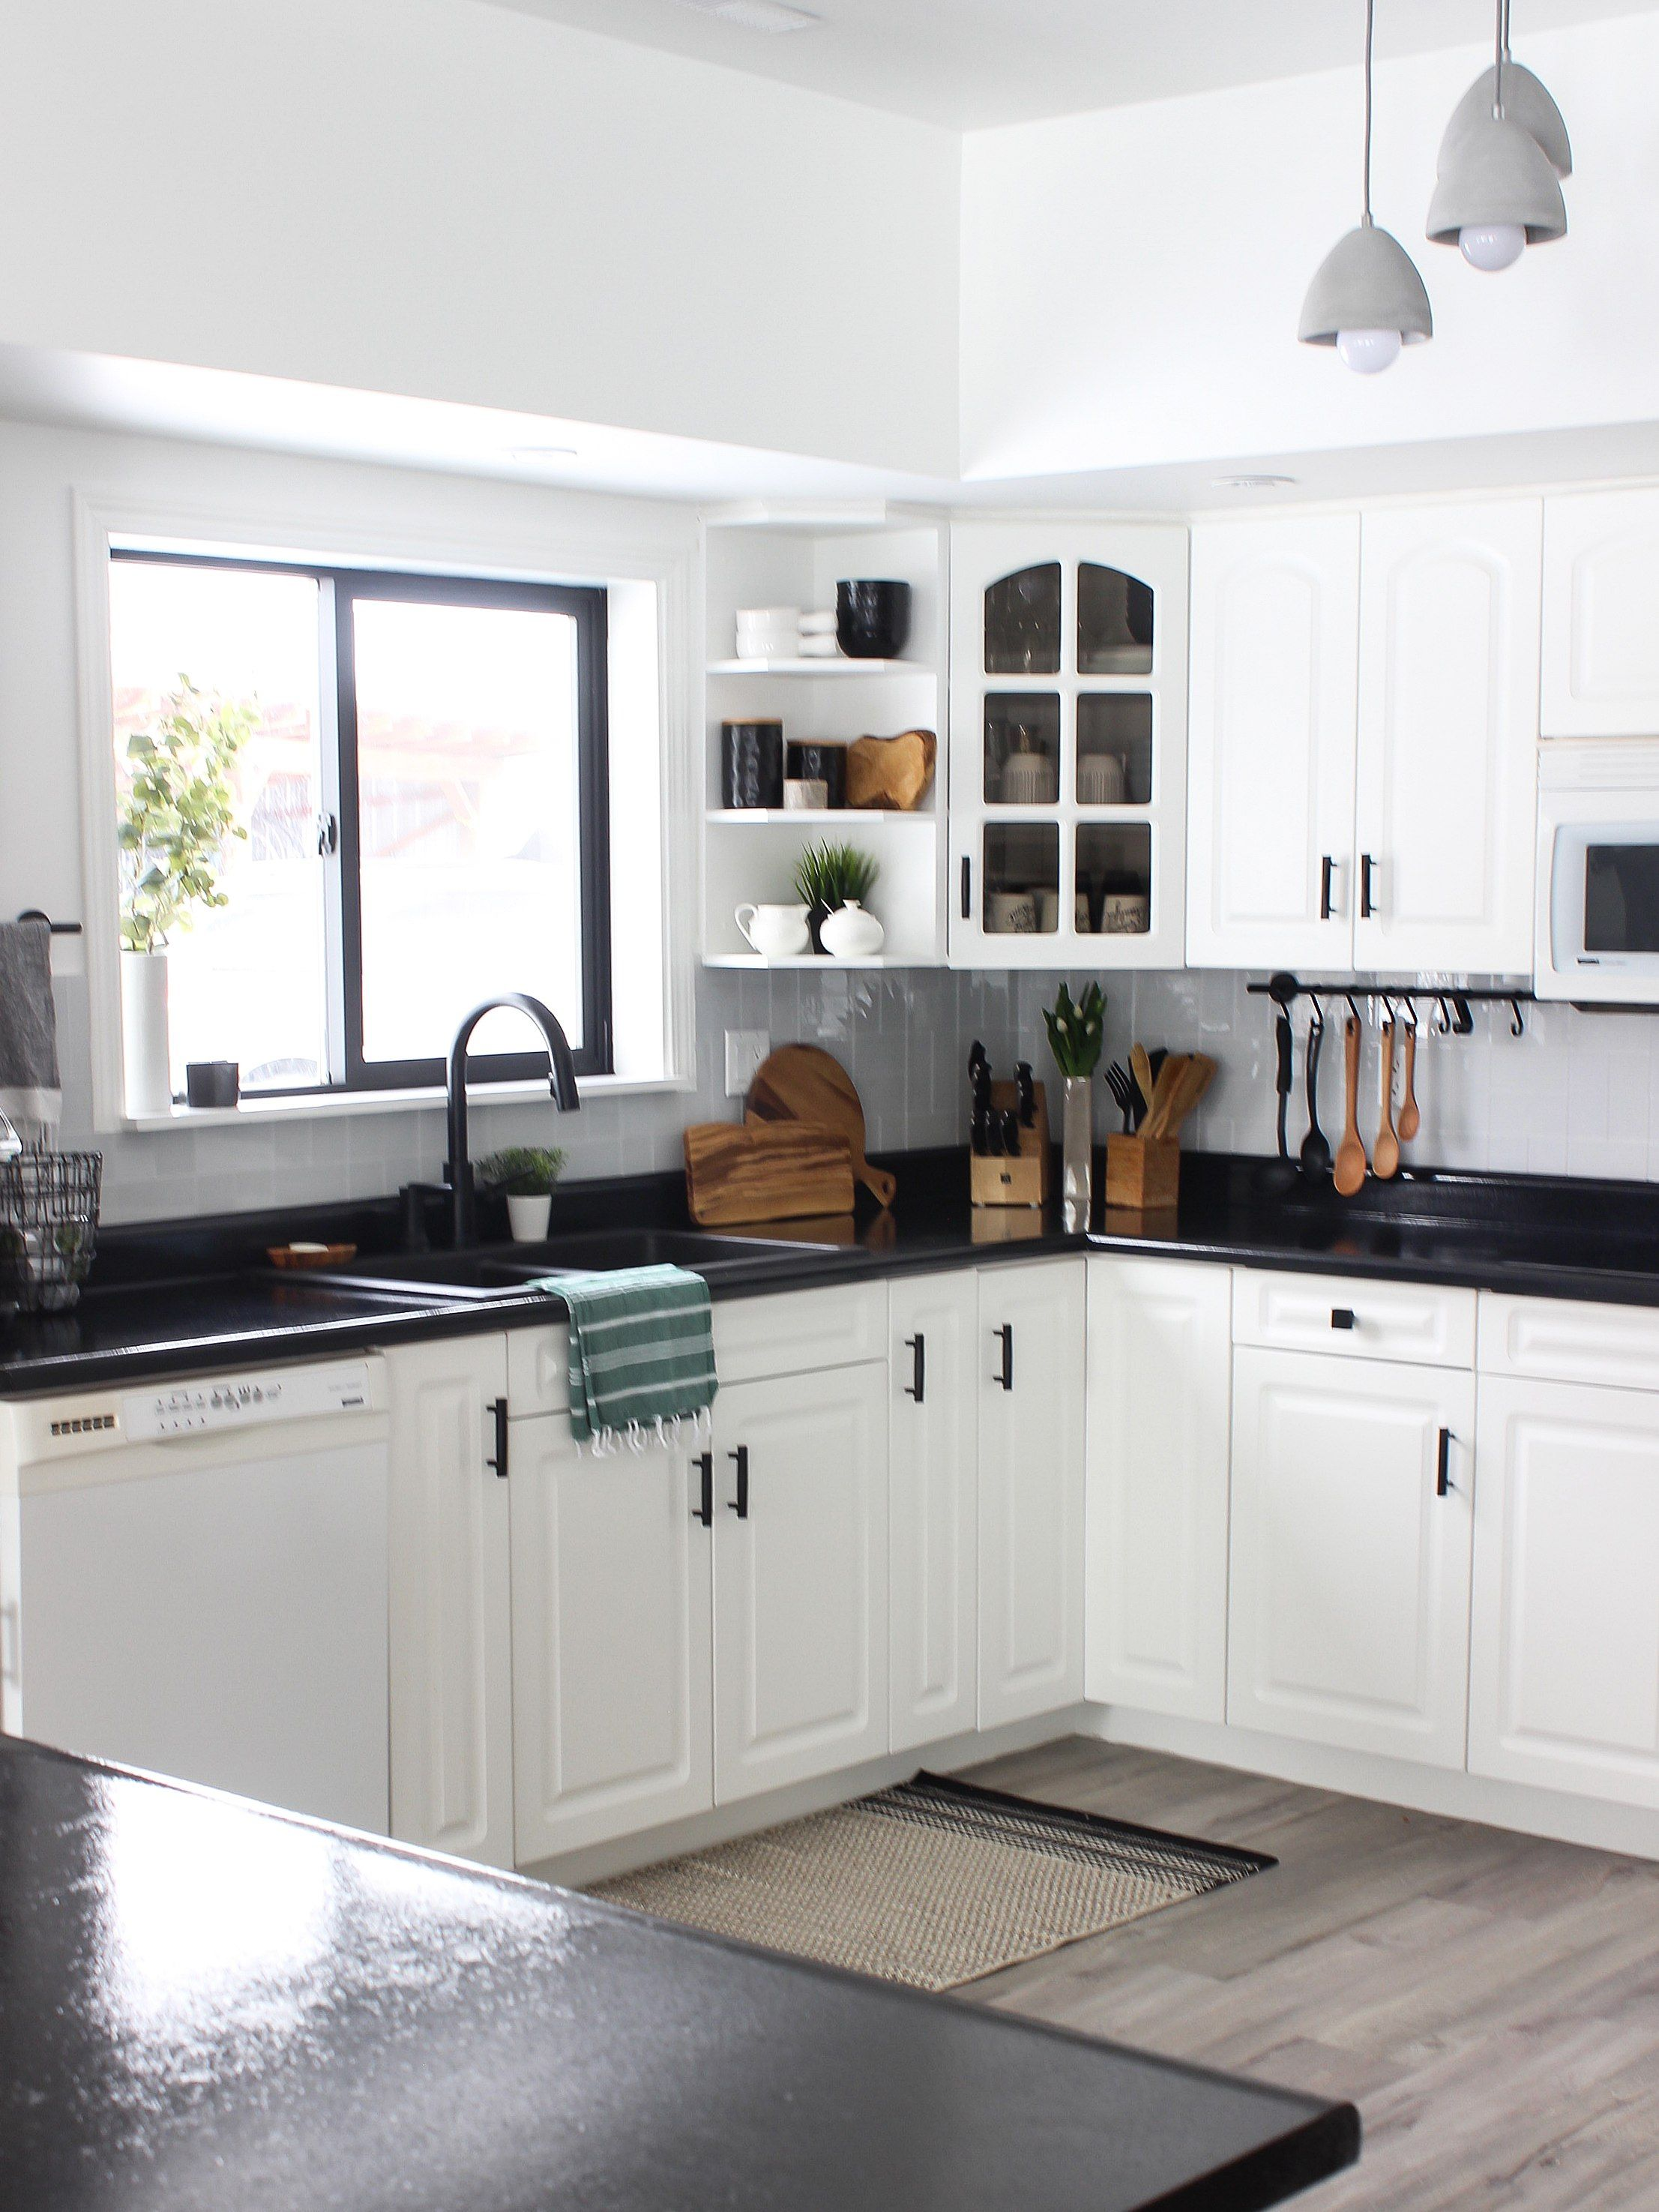 White Kitchen Cabinets With Black Countertops Are The Next Big Reno Trend In 2020 Modern Black Kitchen Black Countertops White Cabinets Black Countertops